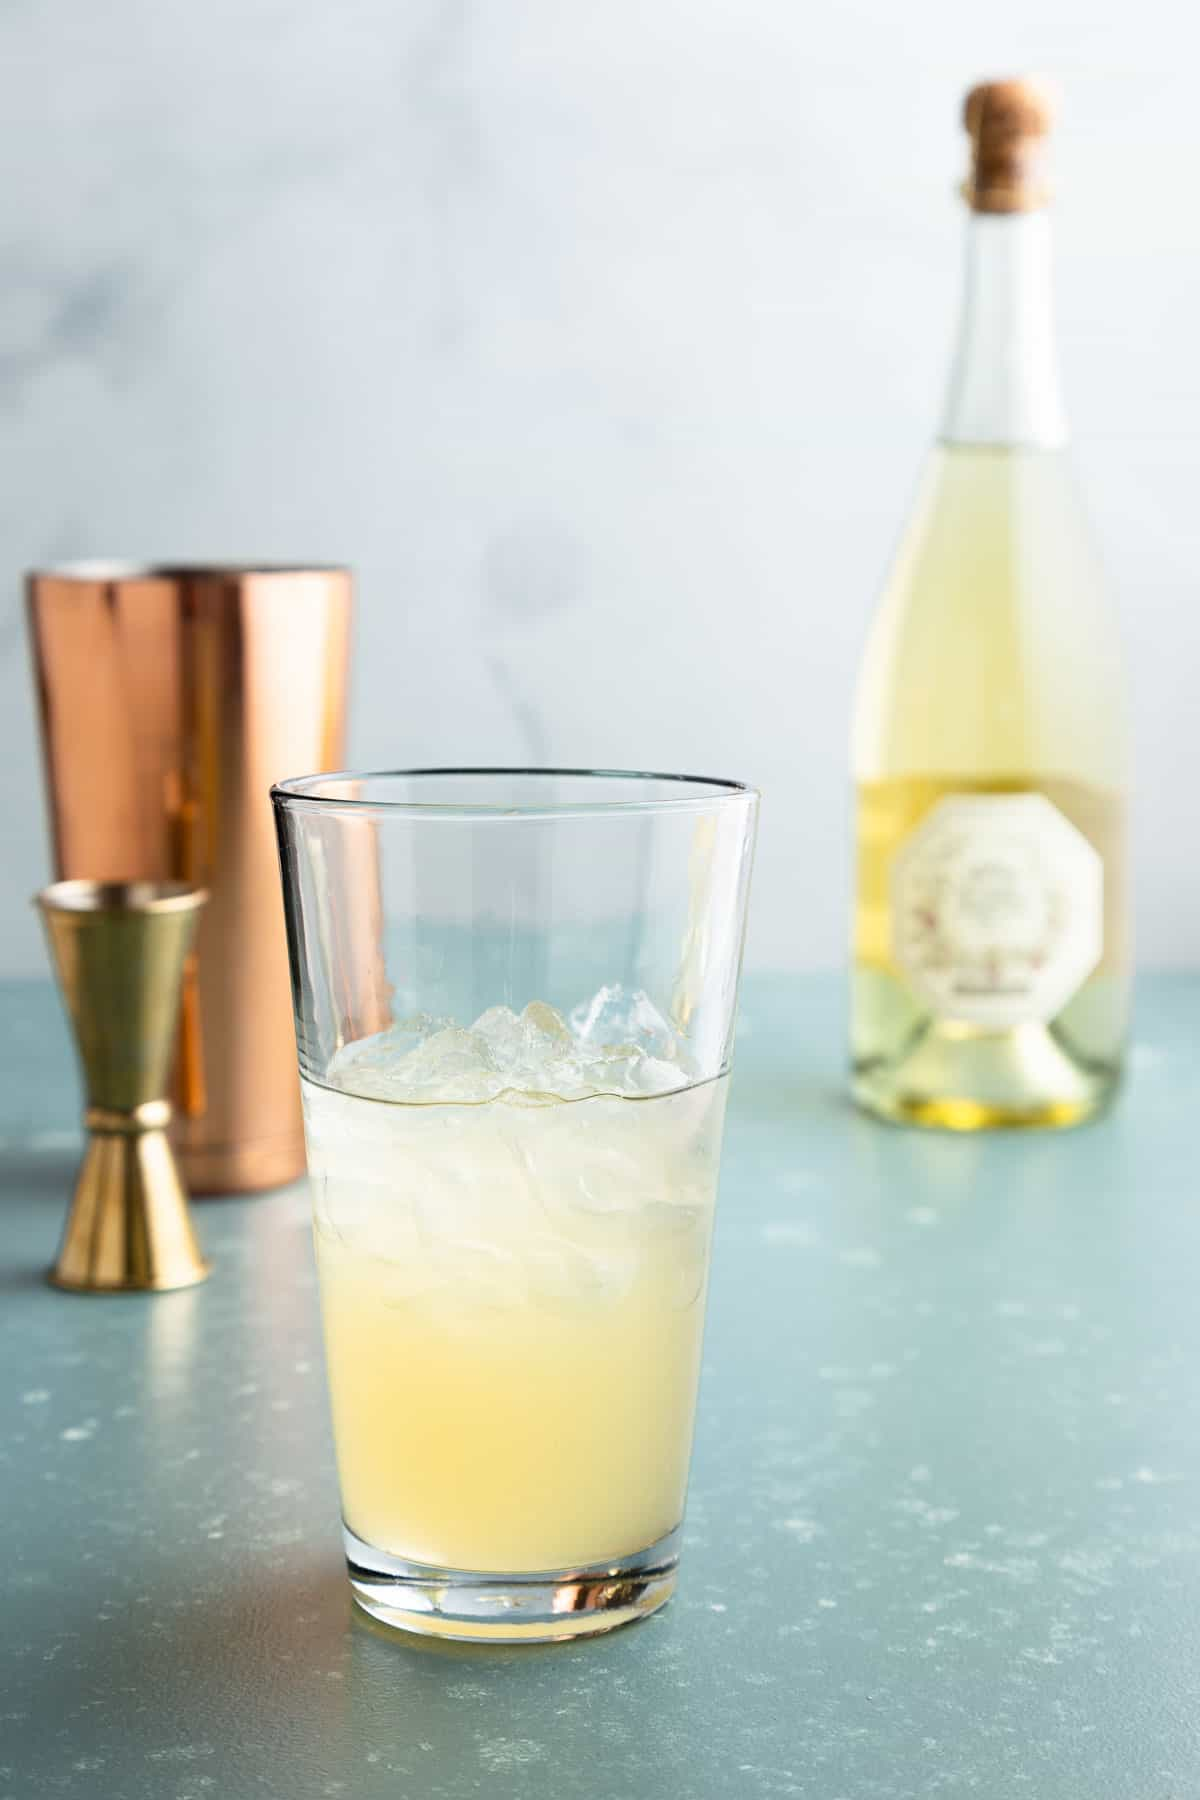 Tall glass with ice and yellow liquid. Bottles and cocktail shaker in the background.